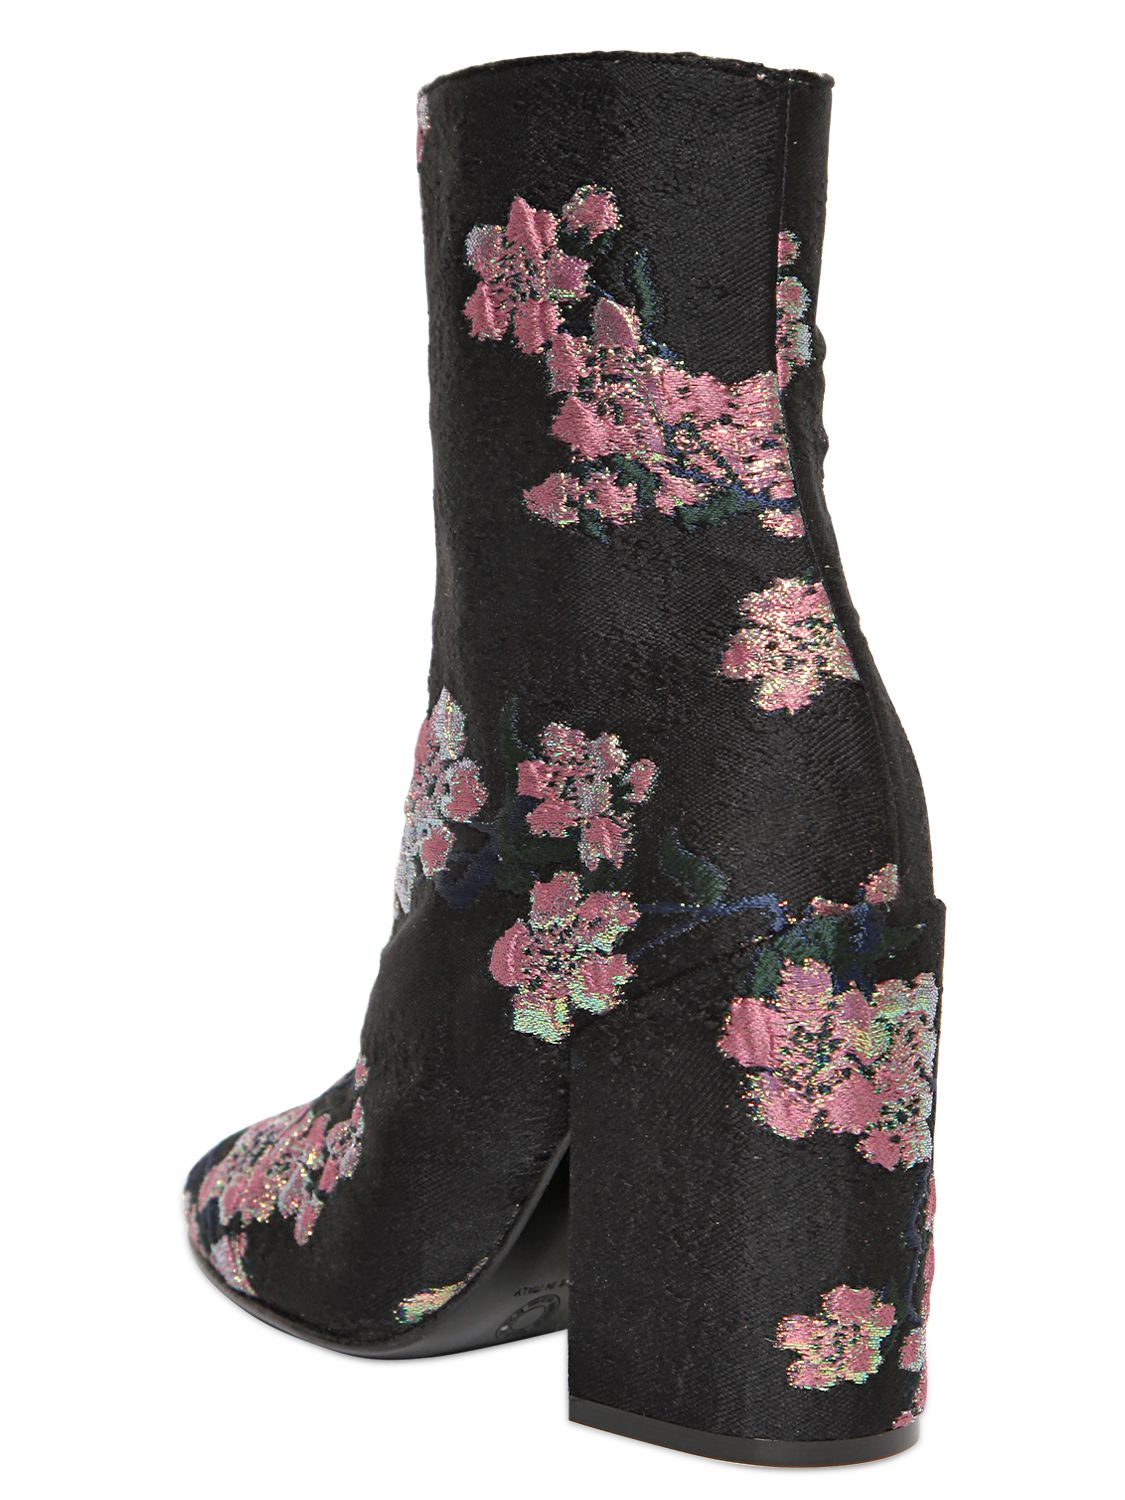 Dries Van Noten 110mm Floral Embroidered Brocade Boots In